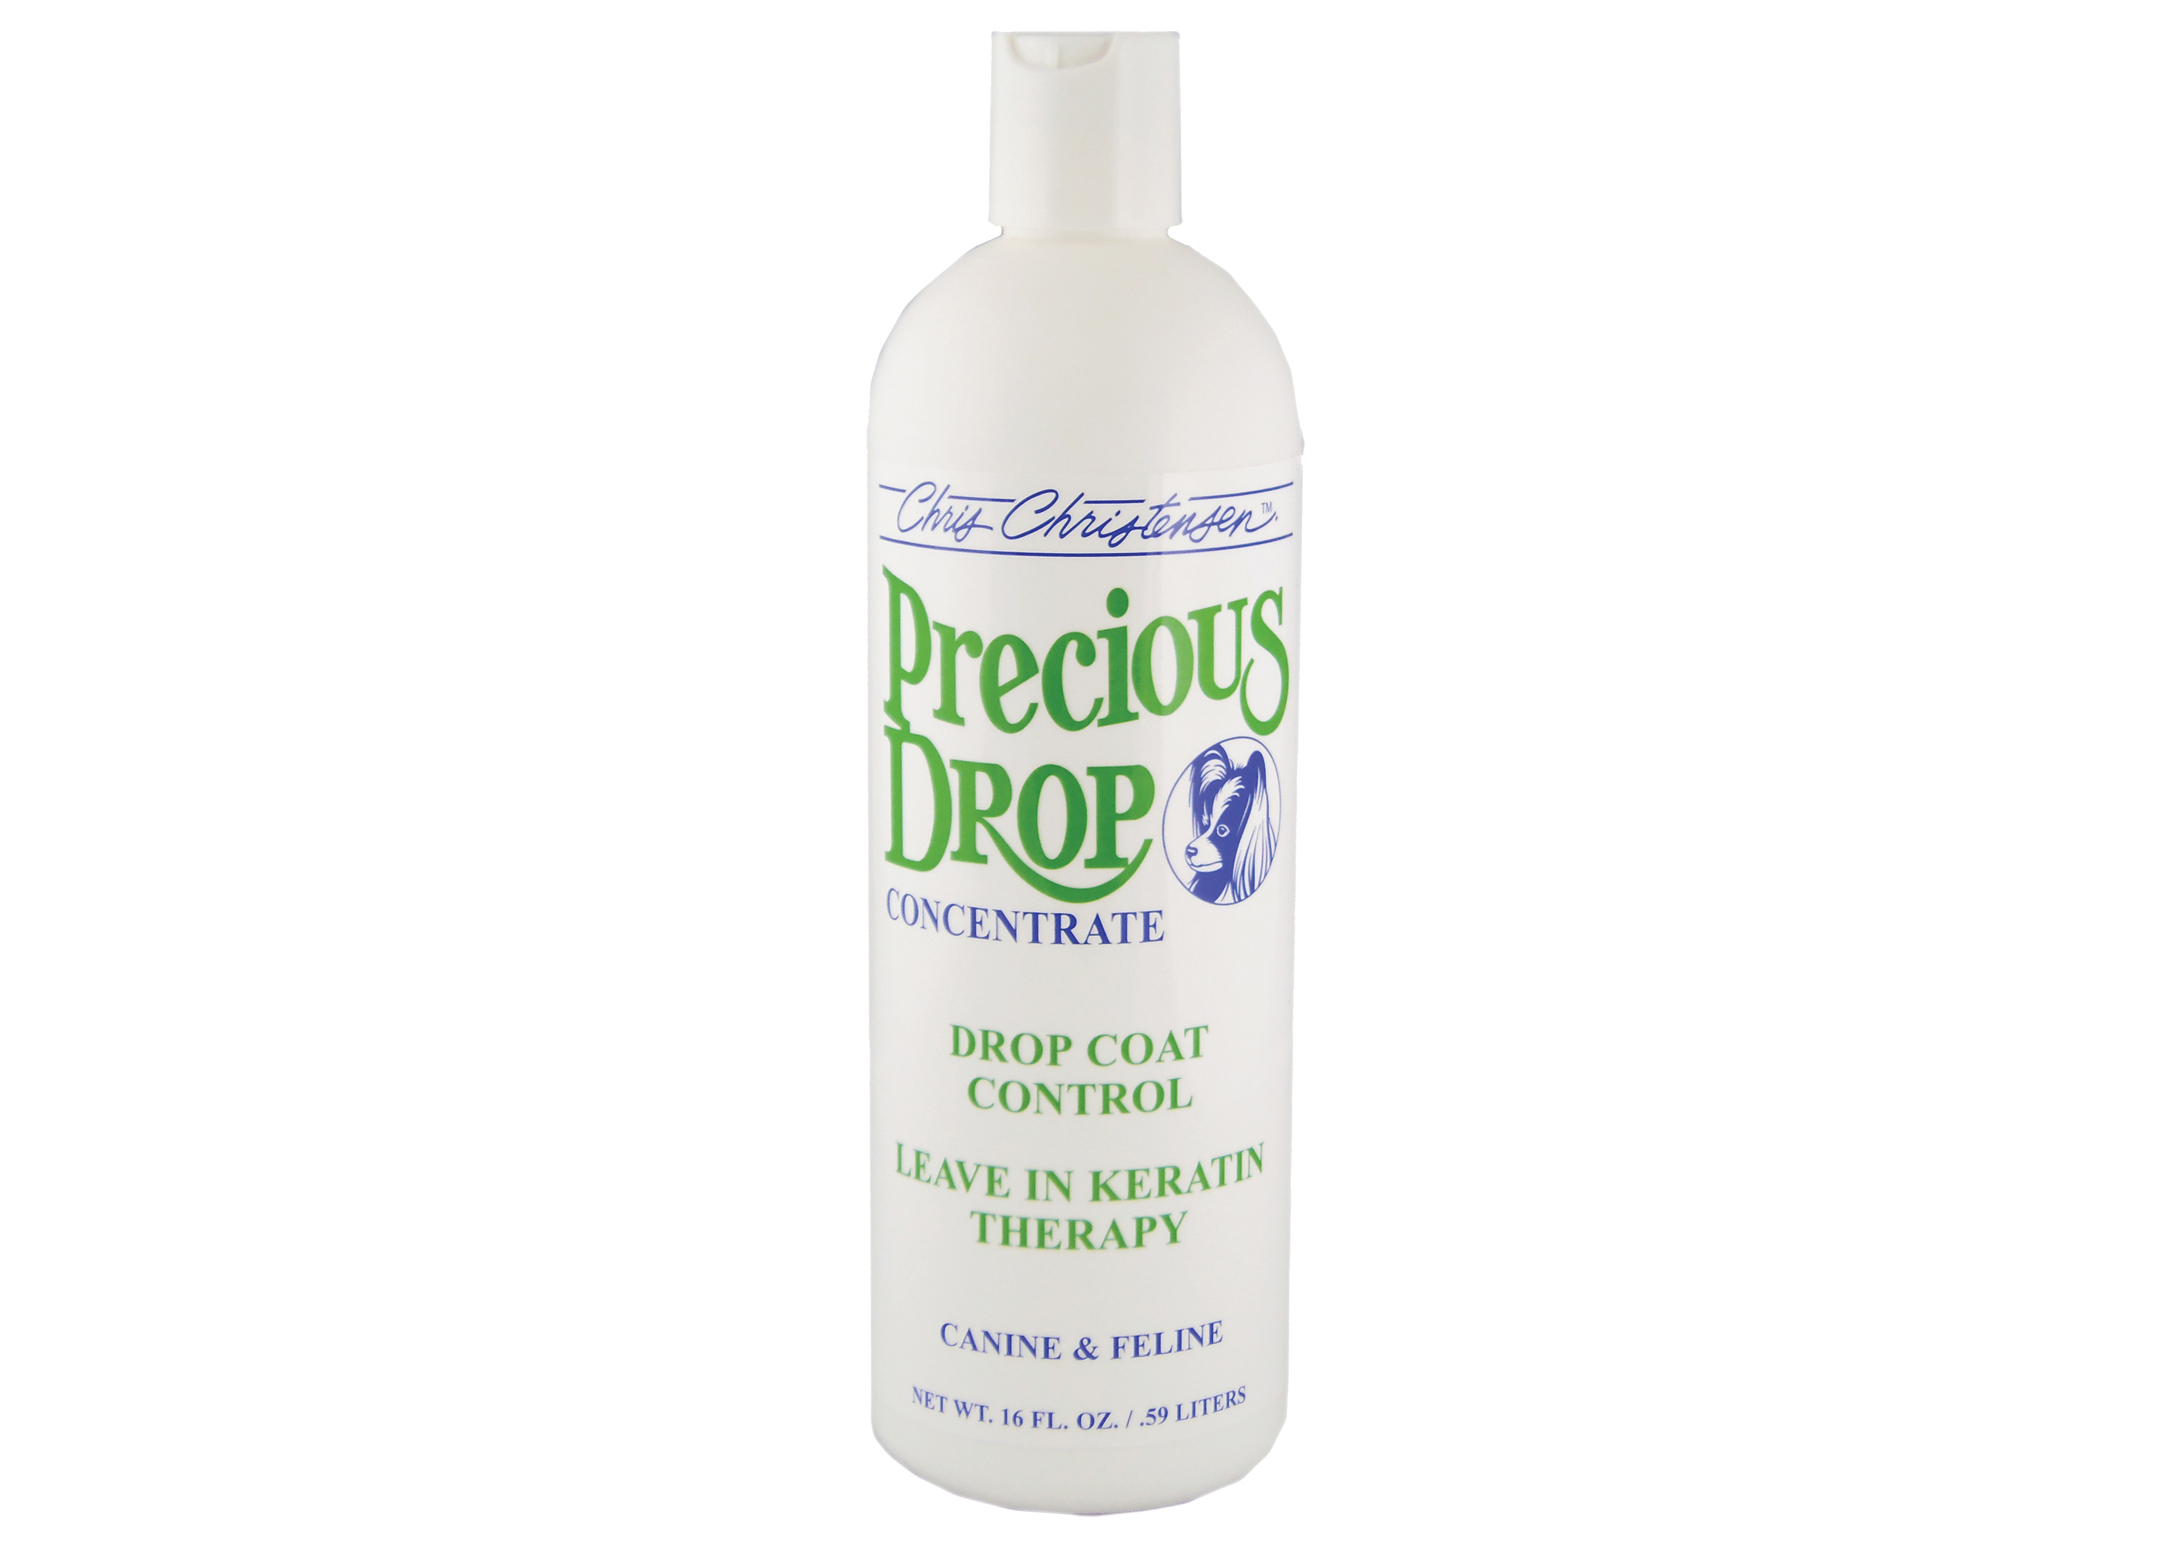 Chris Christensen Systems Precious Drops Concentrate Drop Coat Control Pour Chiens, Chats et Chevaux